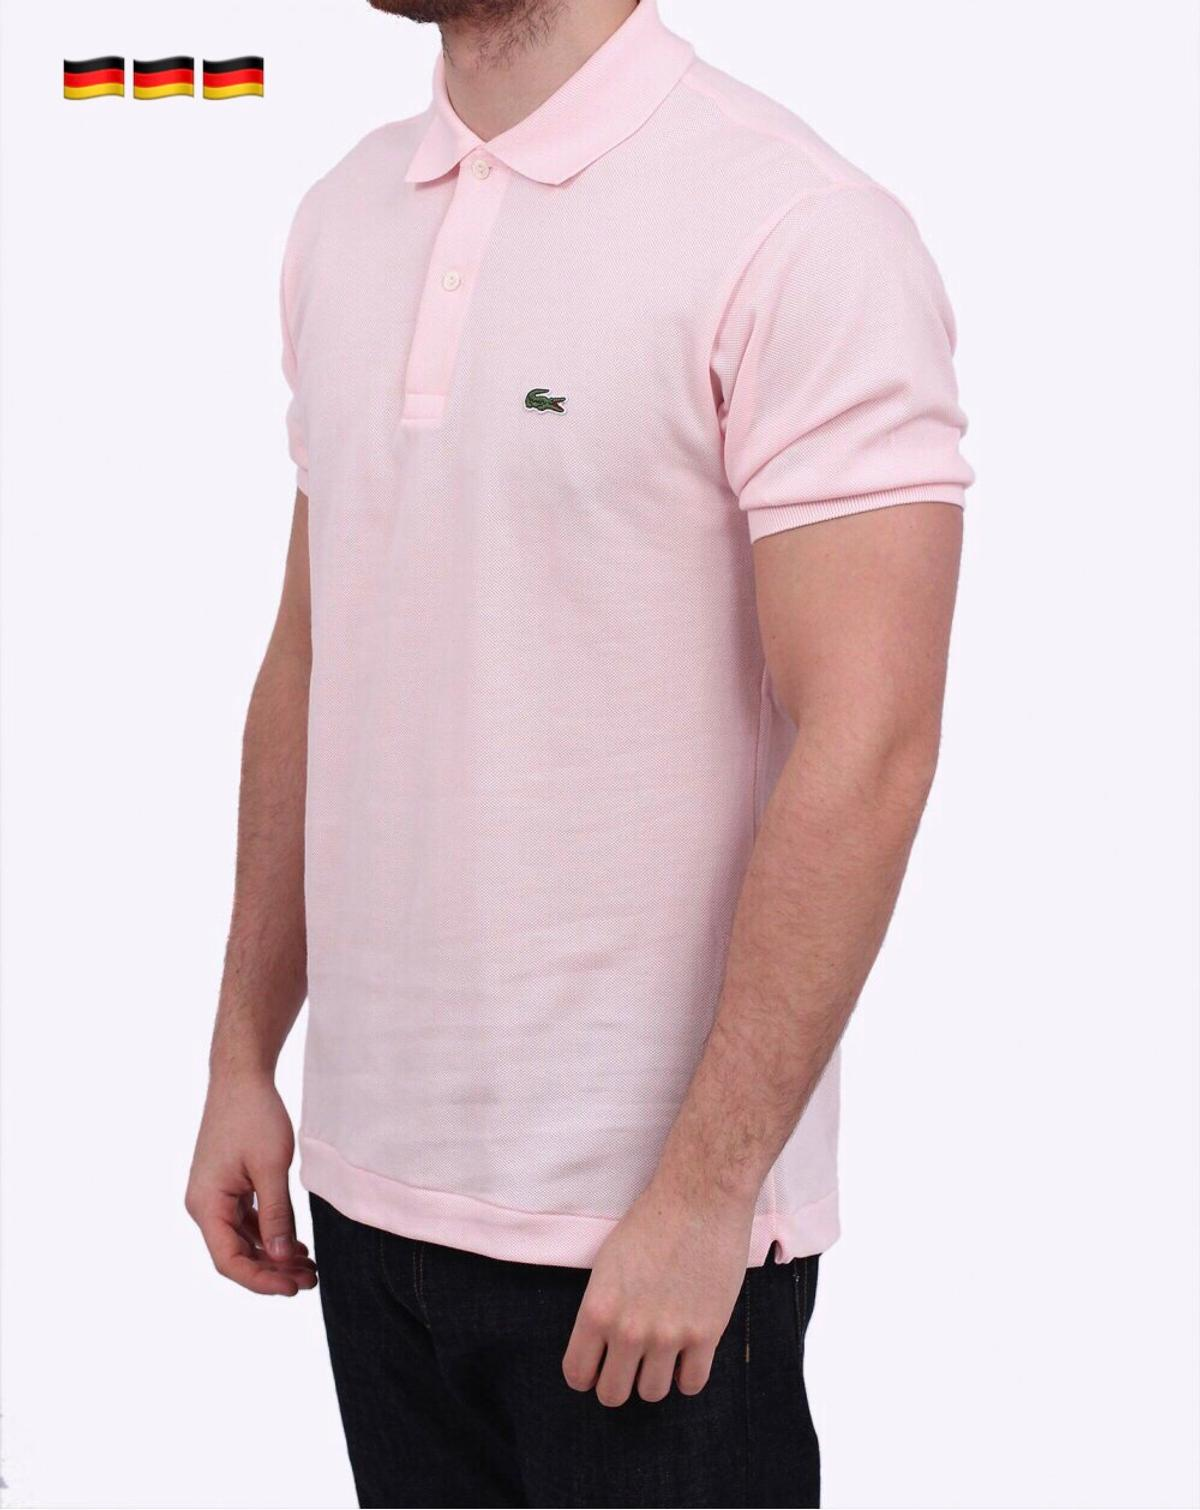 check out ab78a 95465 Lacoste Poloshirt Herren Gr. S/3 Pink NEU